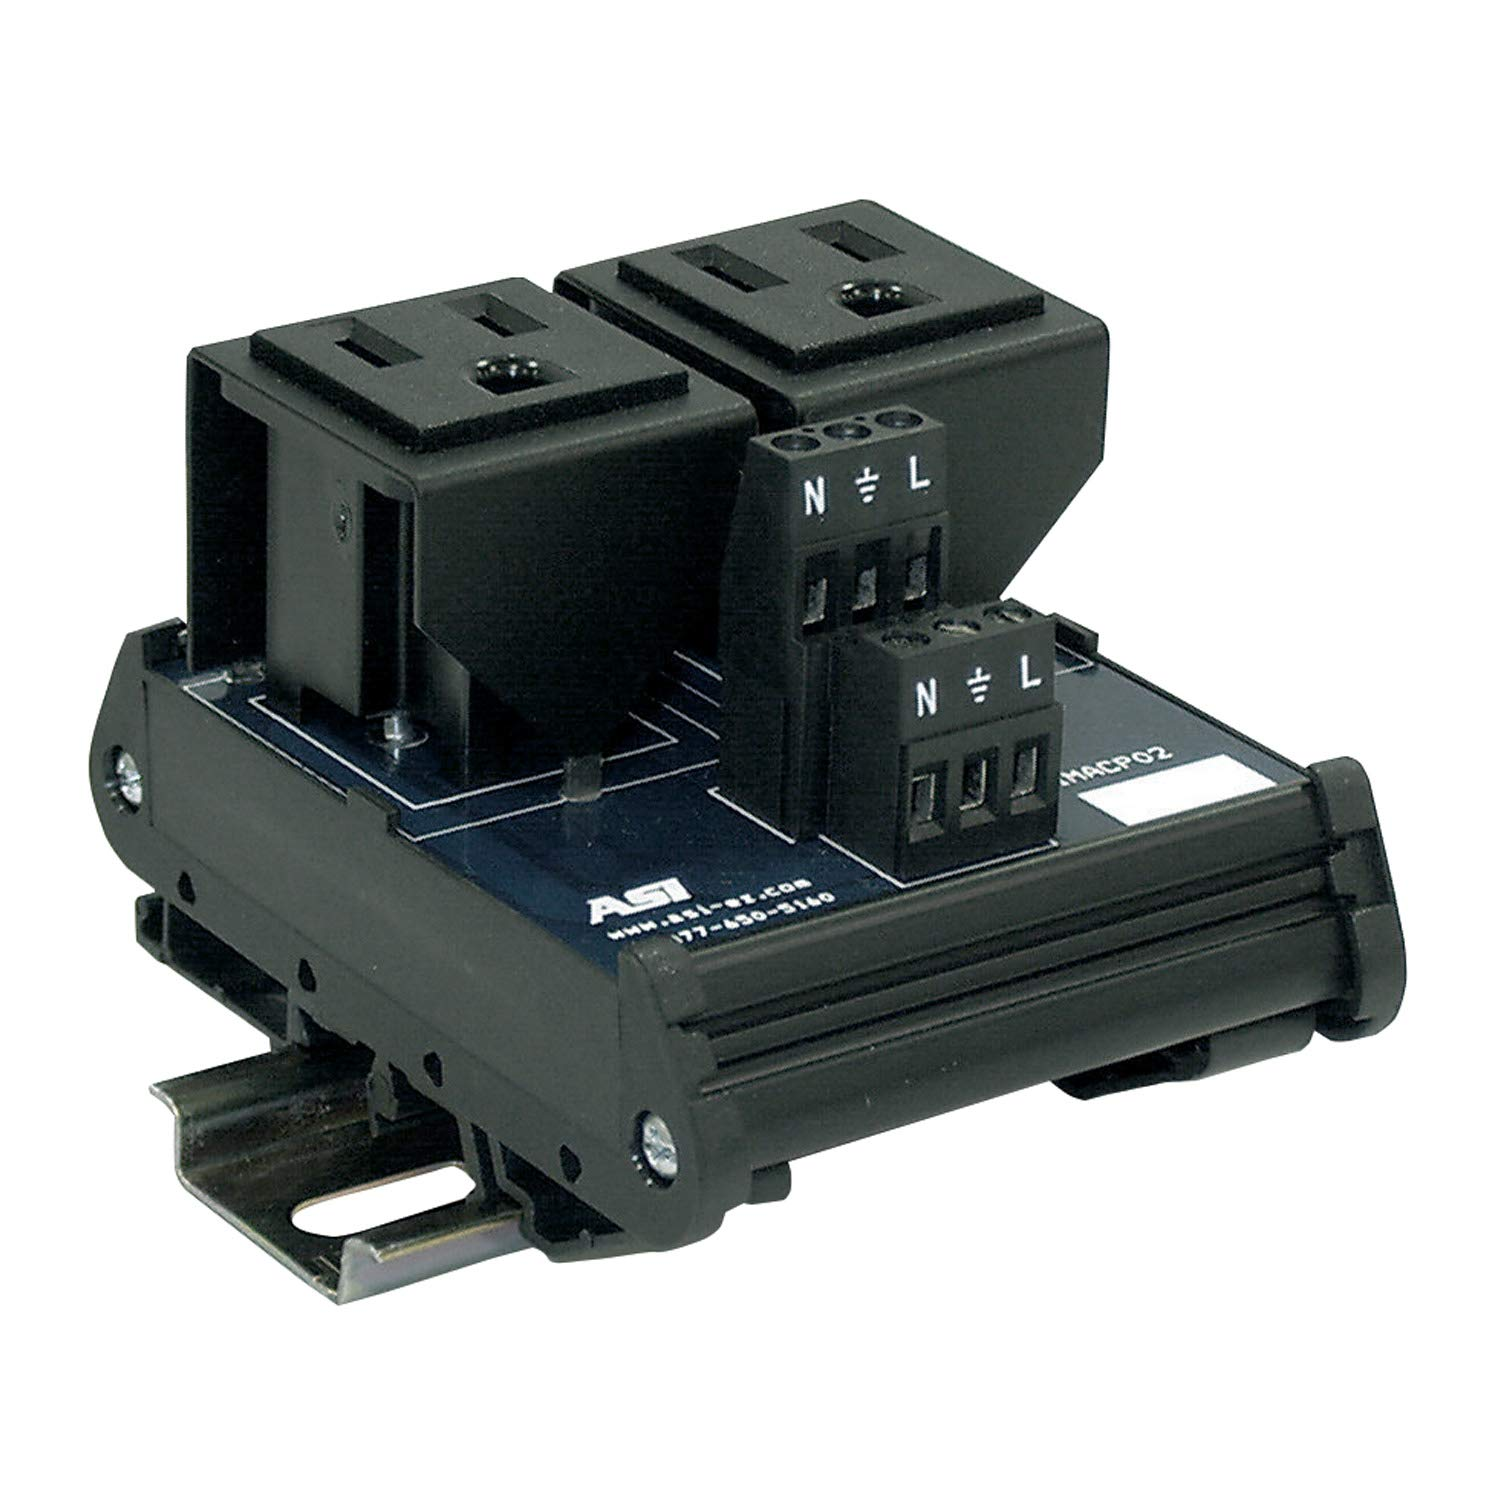 ASI IMACP02 Duplex Three Prong Modular Outlet, AC Receptacle, Din Rail Outlet